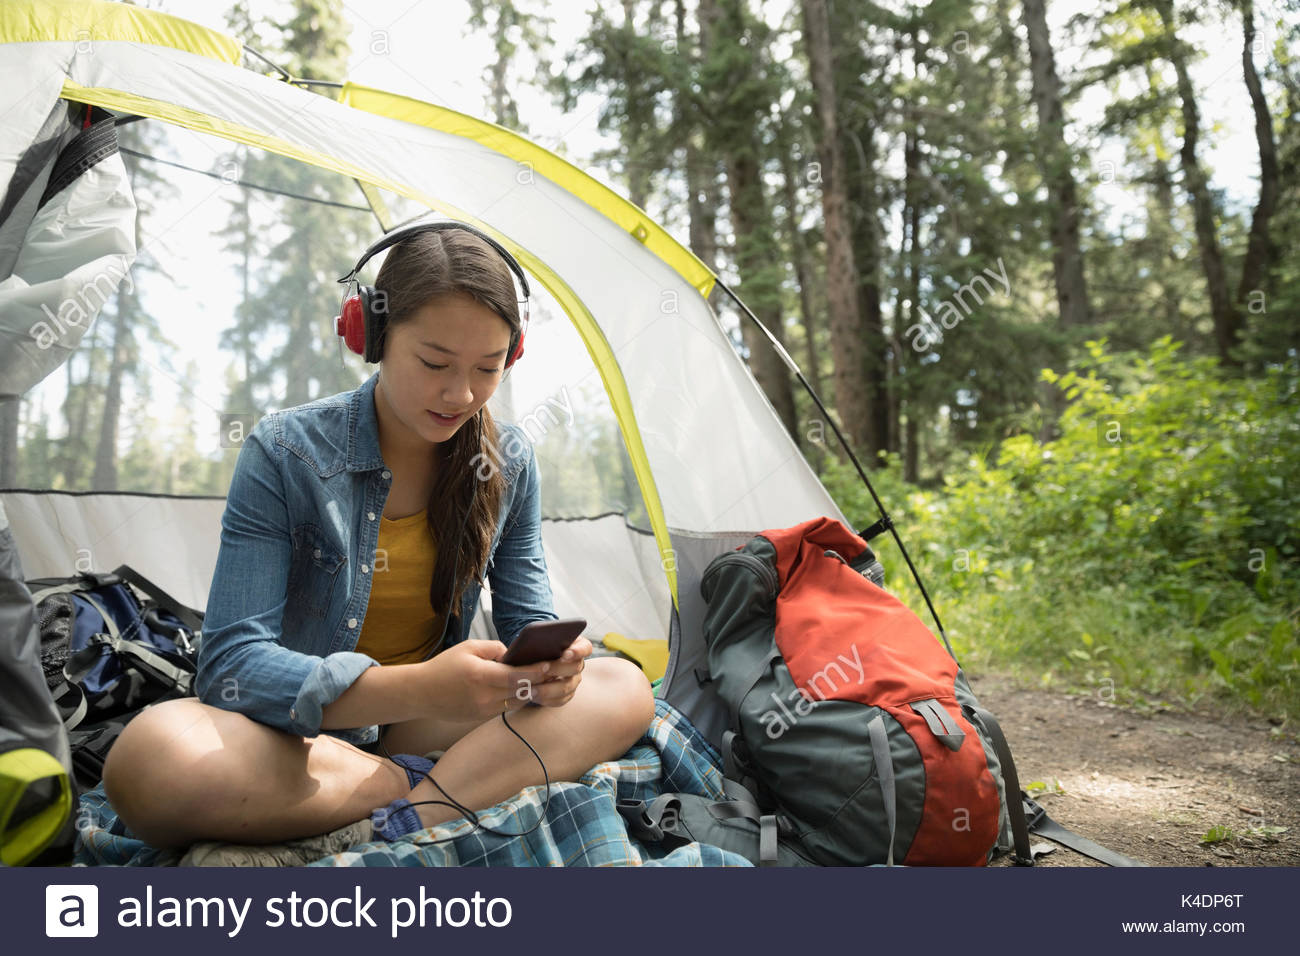 Teenage girl relaxing, camping and listening to music with headphones and mp3 player in tent - Stock Image